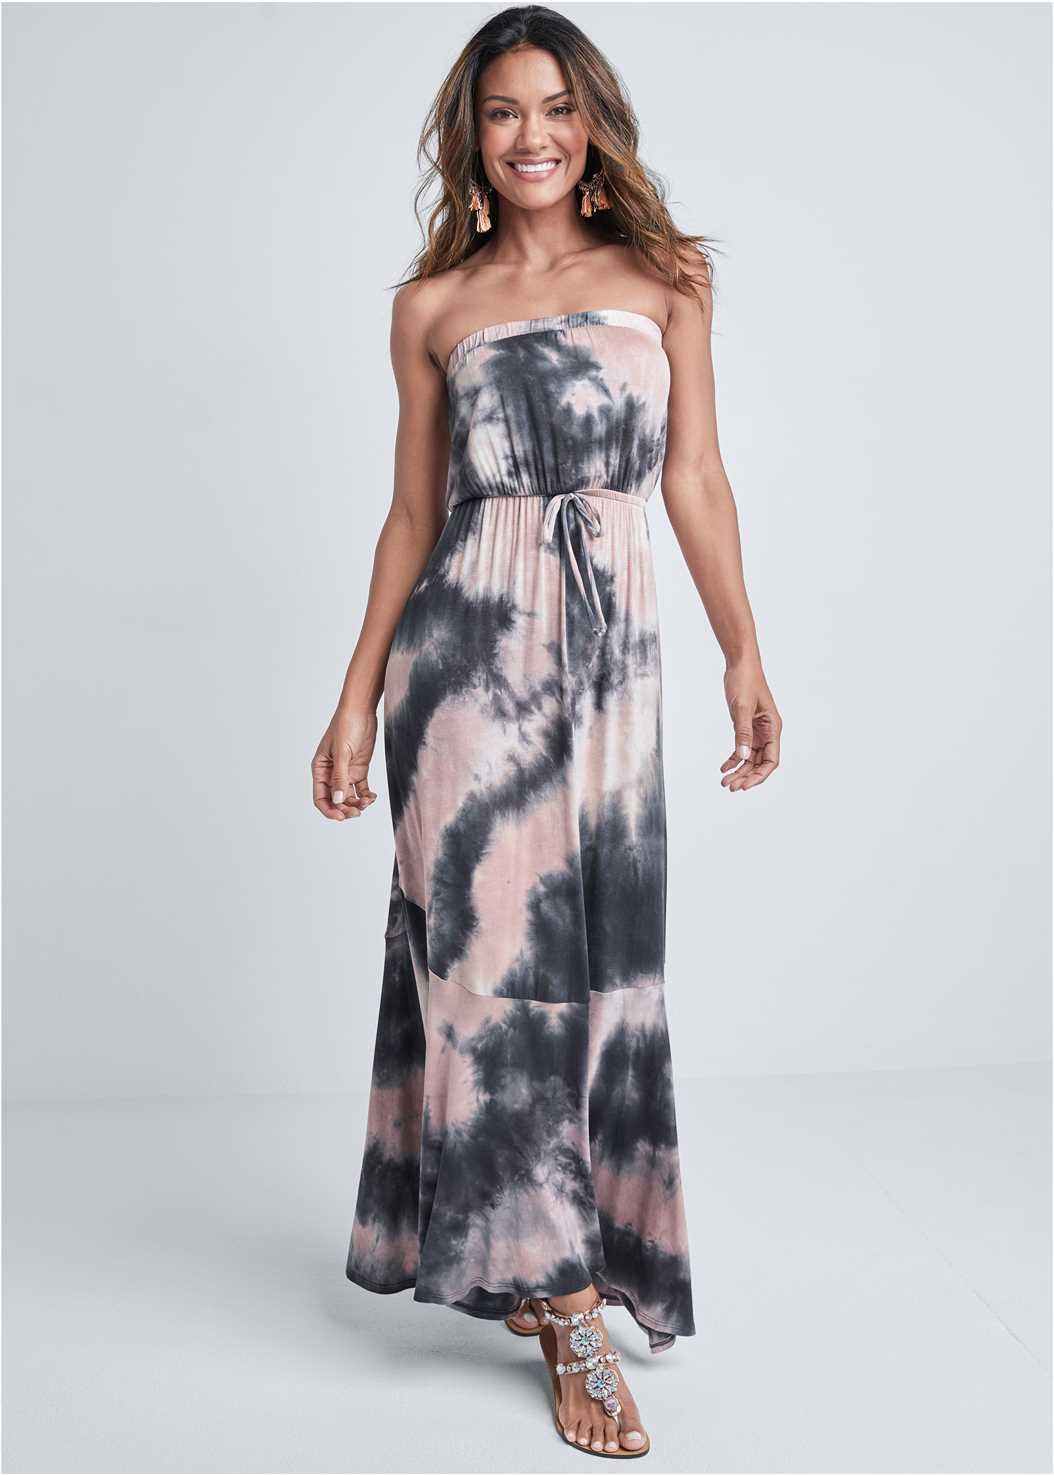 Strapless Maxi Dress,Pearl™ By Venus Strapless Bra,Jean Jacket,Tassel Detail Hoop Earrings